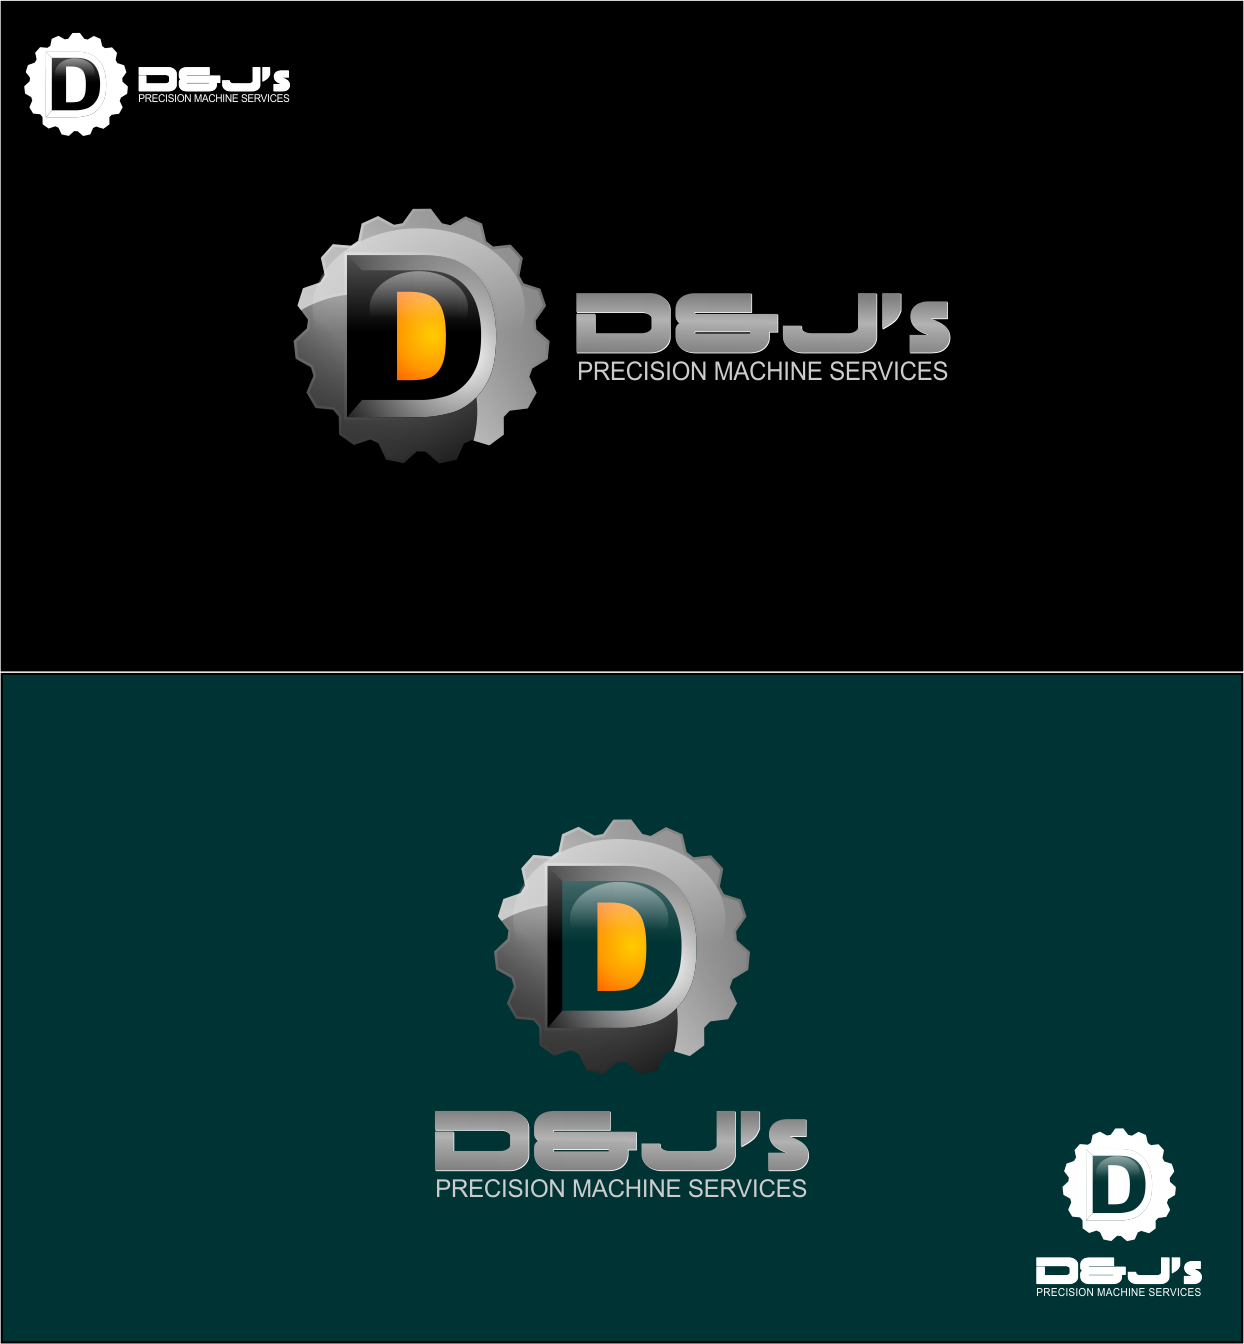 Logo Design by Agus Martoyo - Entry No. 119 in the Logo Design Contest Creative Logo Design for D & J's Precision Machine Services.